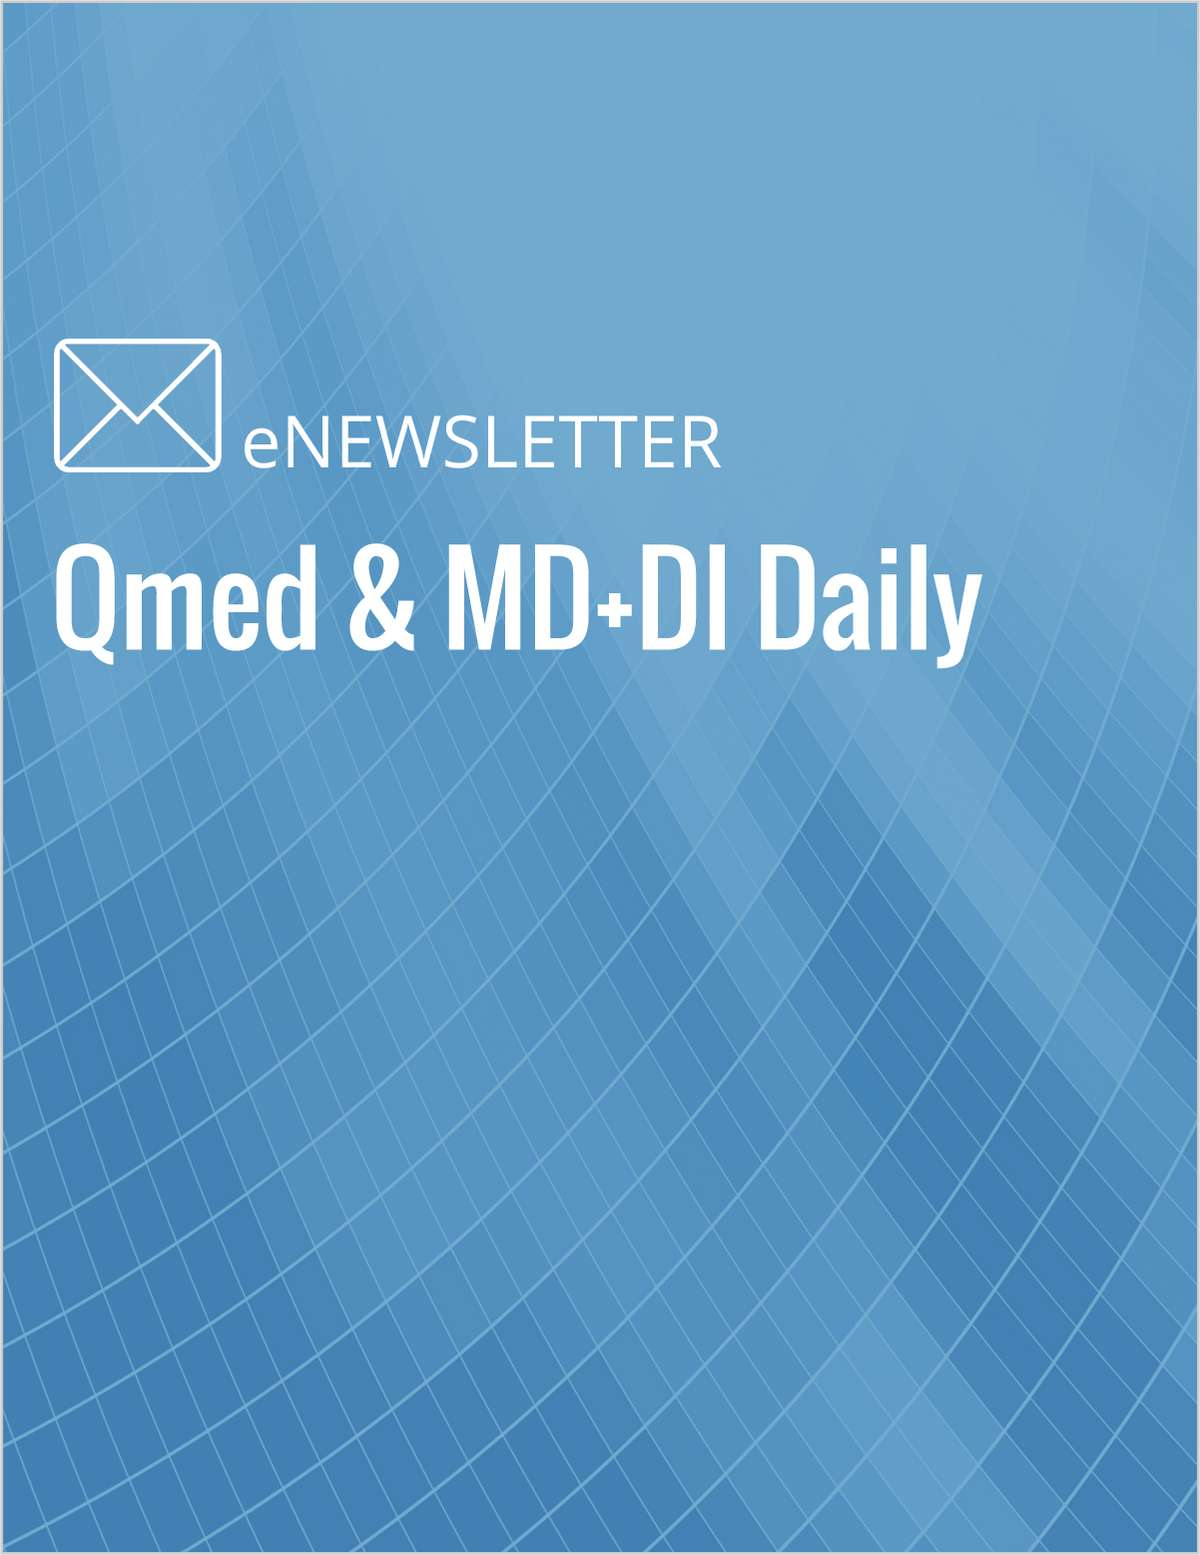 Qmed & MD+DI Daily